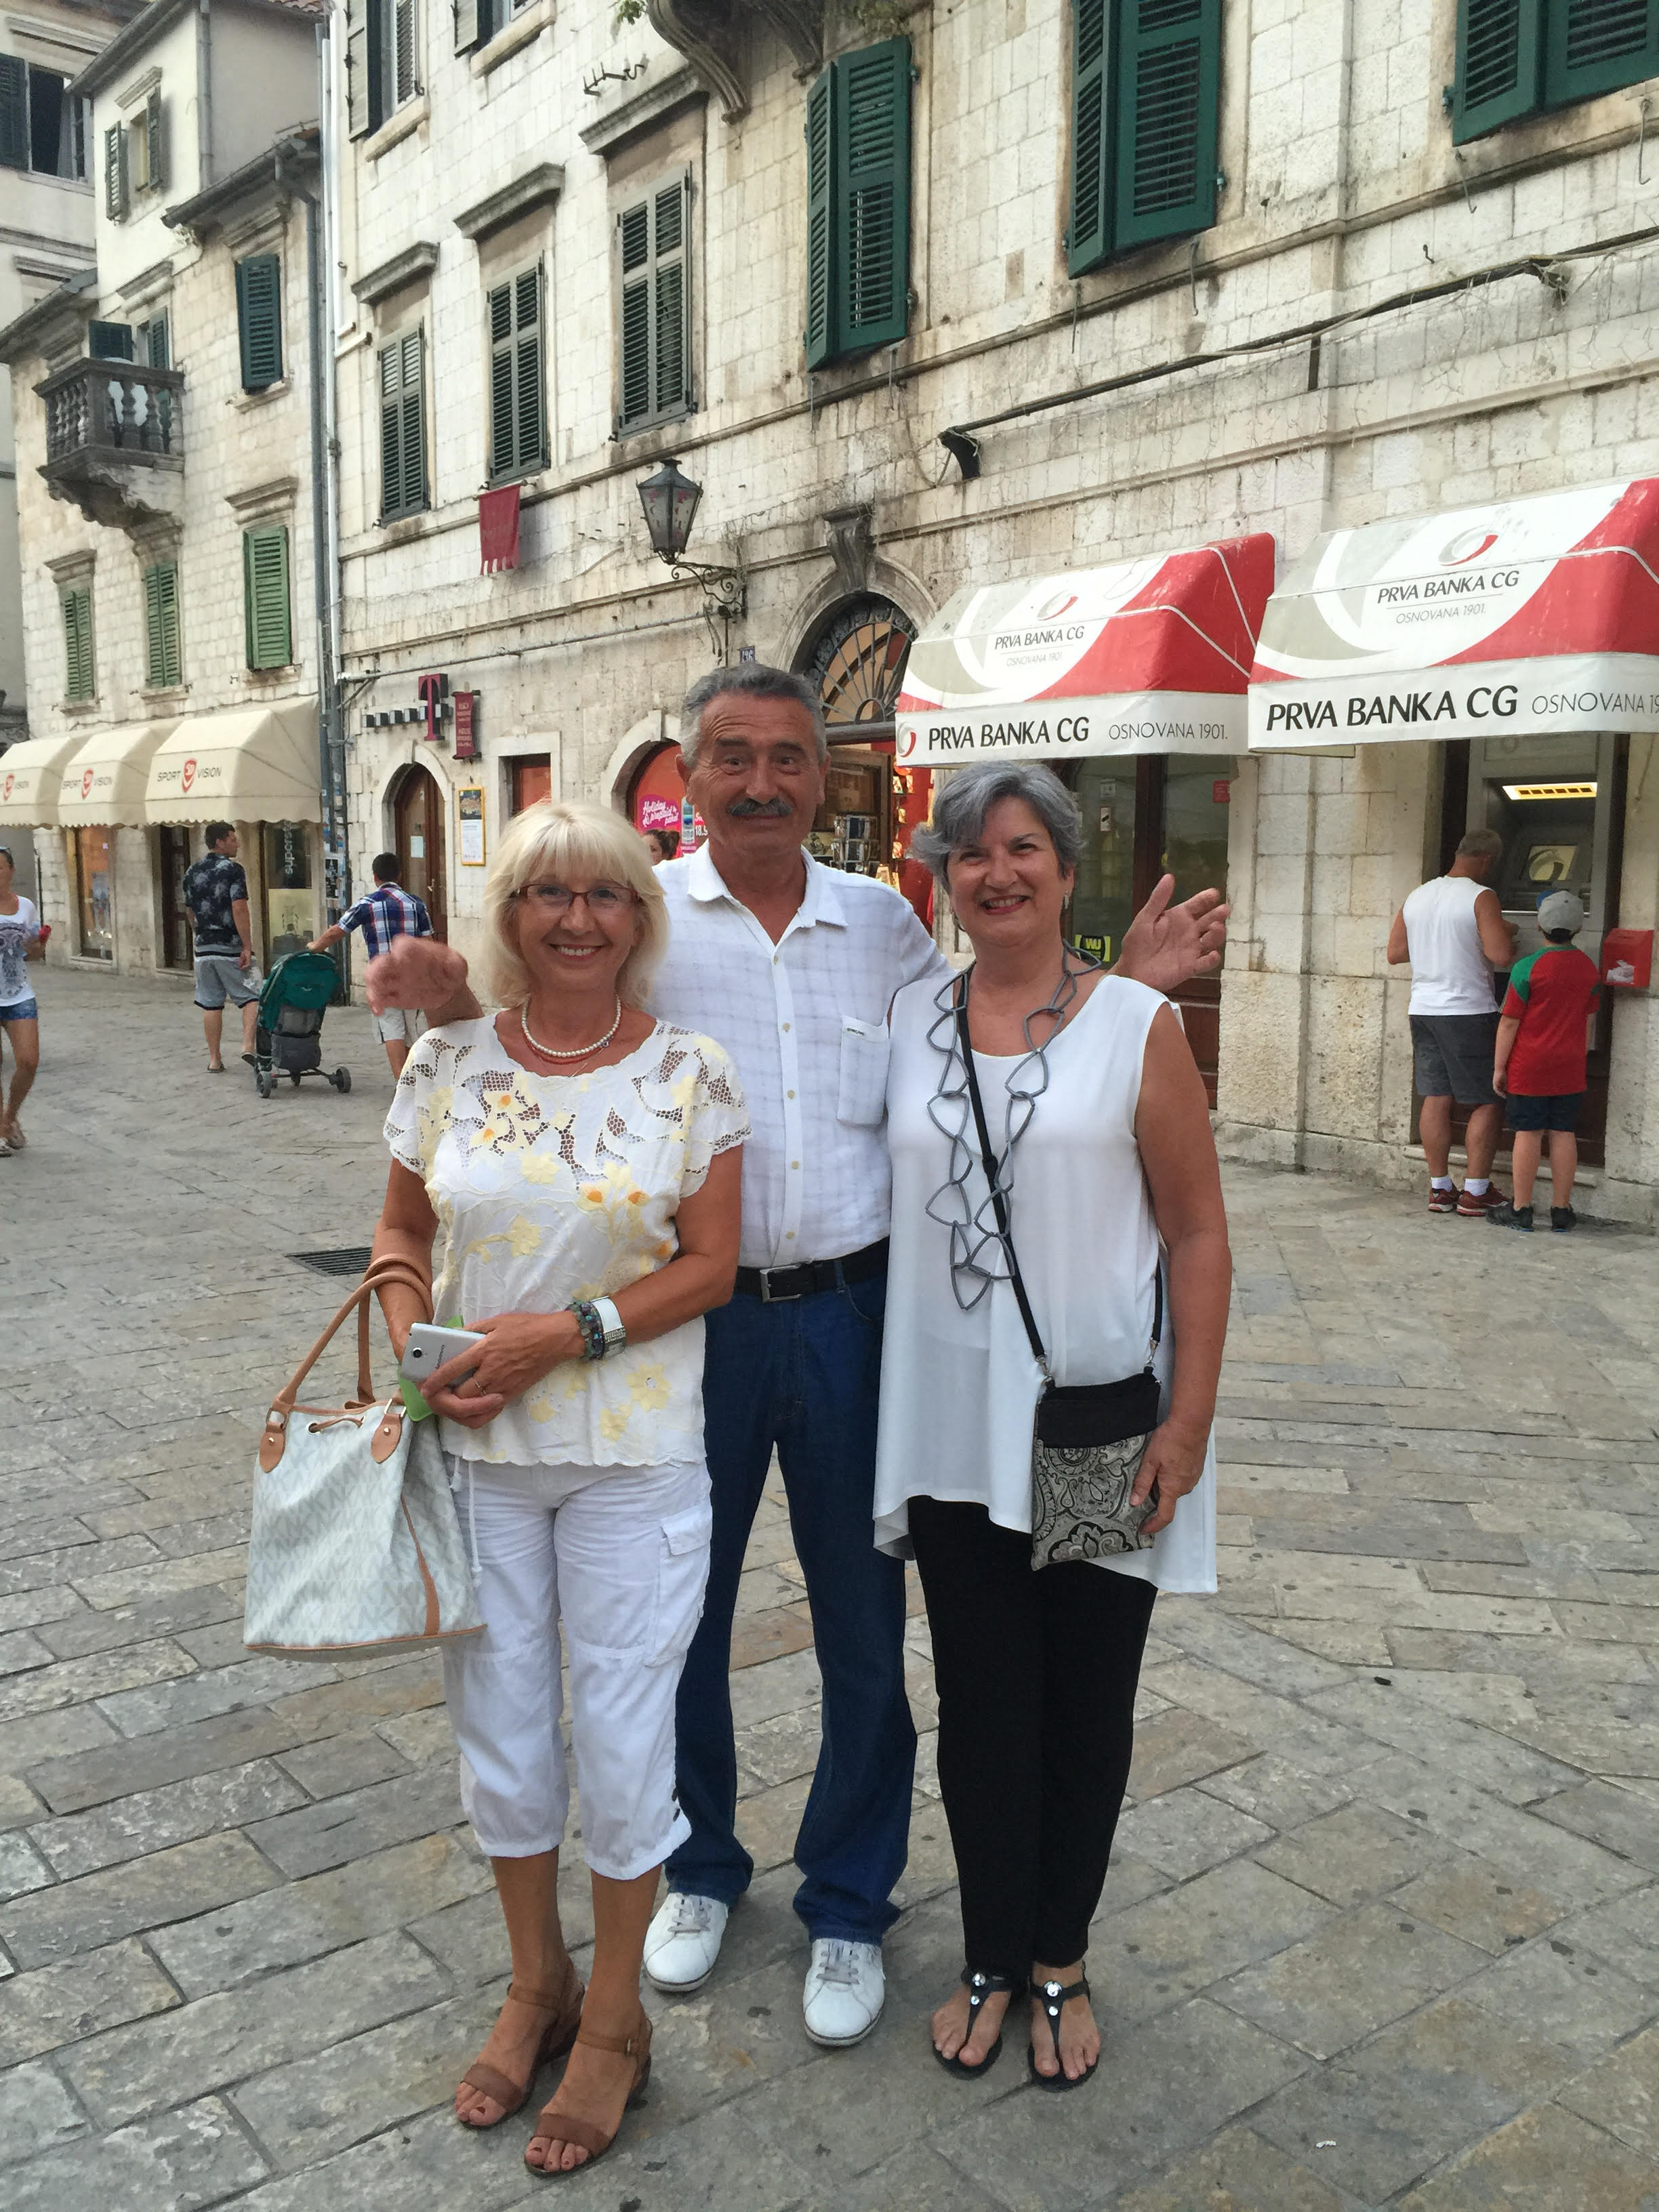 That's me on the right, wearing my 'killer' necklace in Kotor, Montenegro.With Danka and Rade.